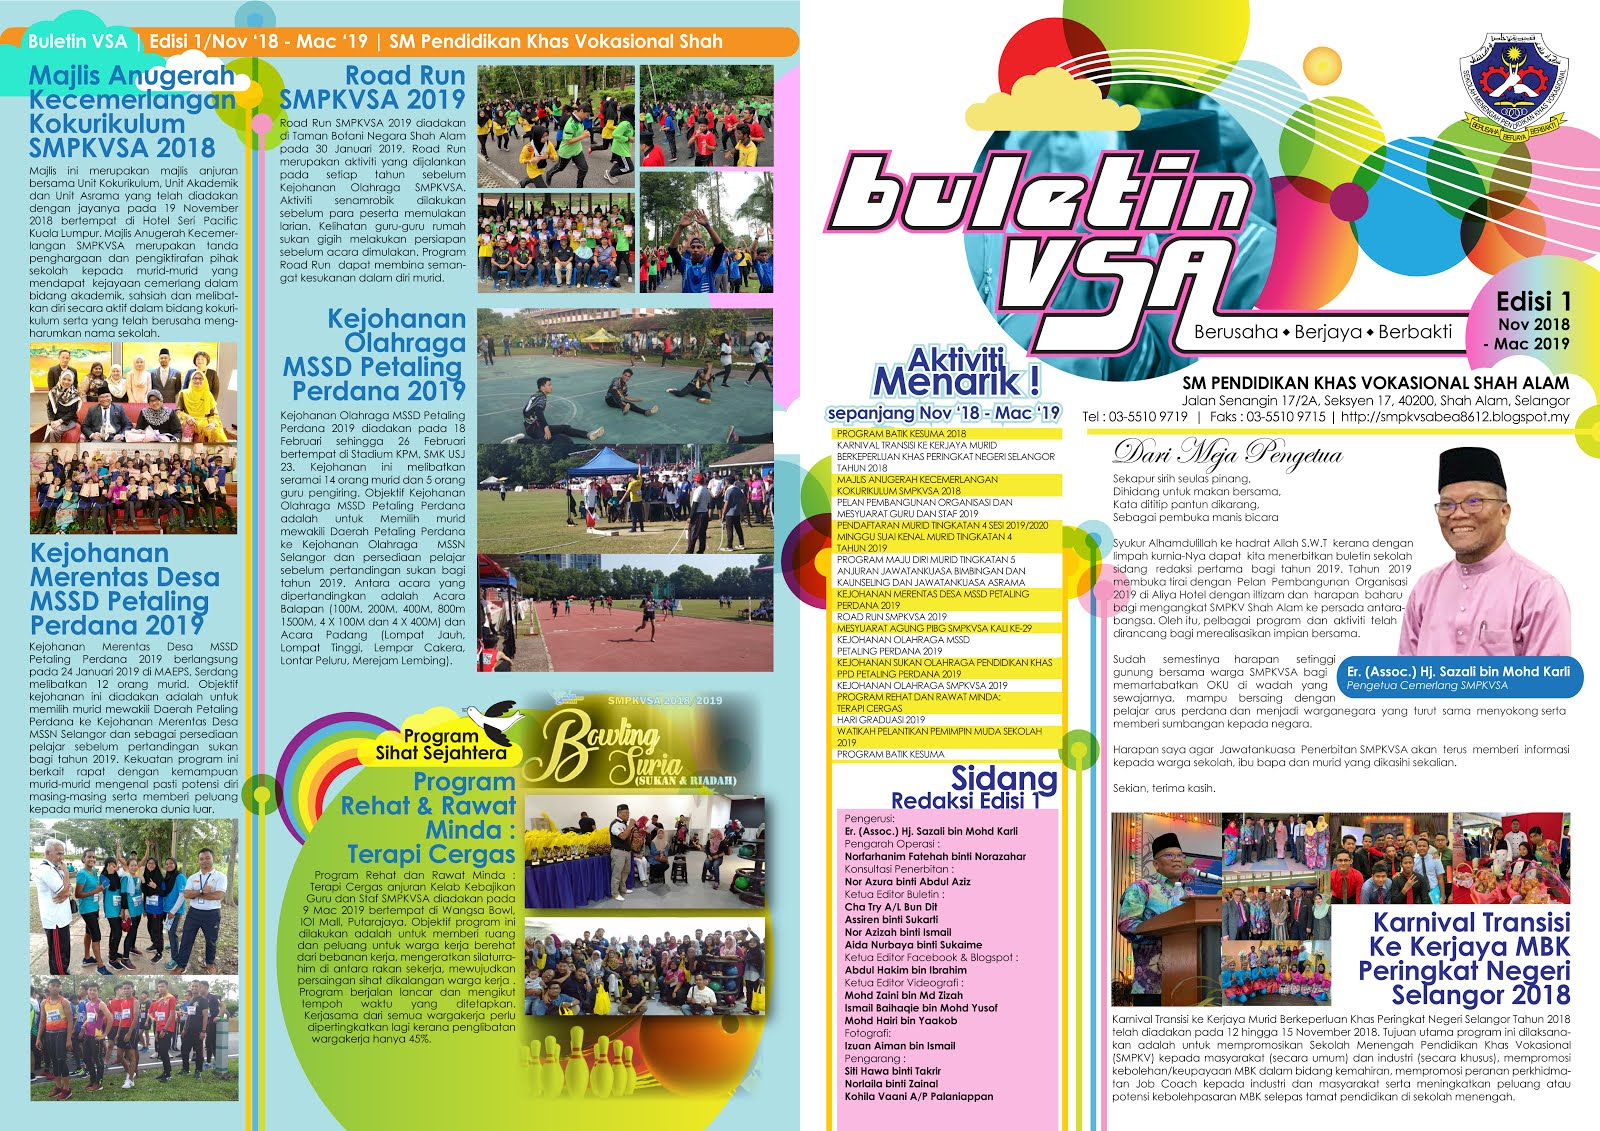 Buletin Edisi 1 2019 (November 2018-March 2019